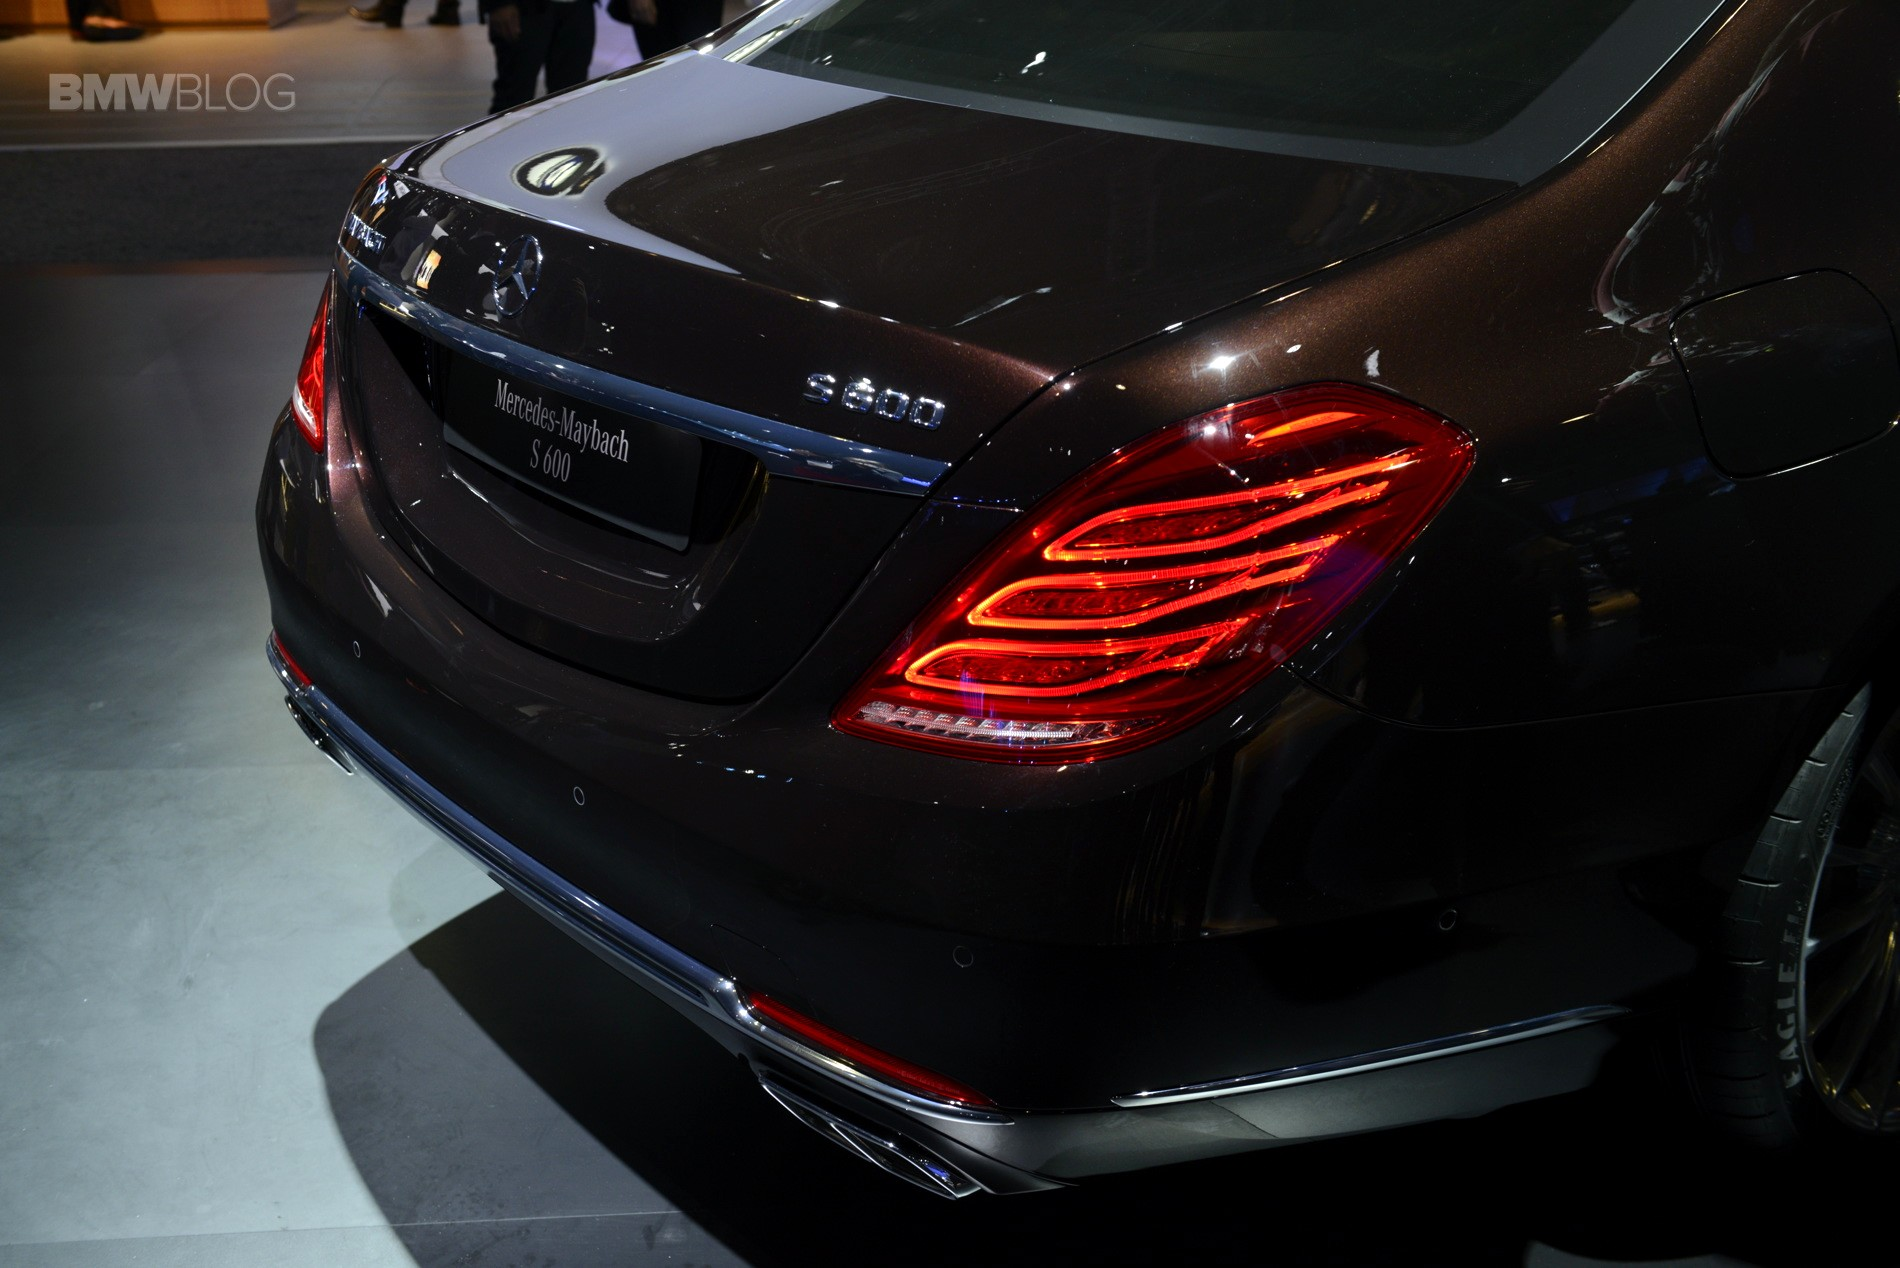 Mercedes Maybach S600 Wallpapers HD Download 1900x1268